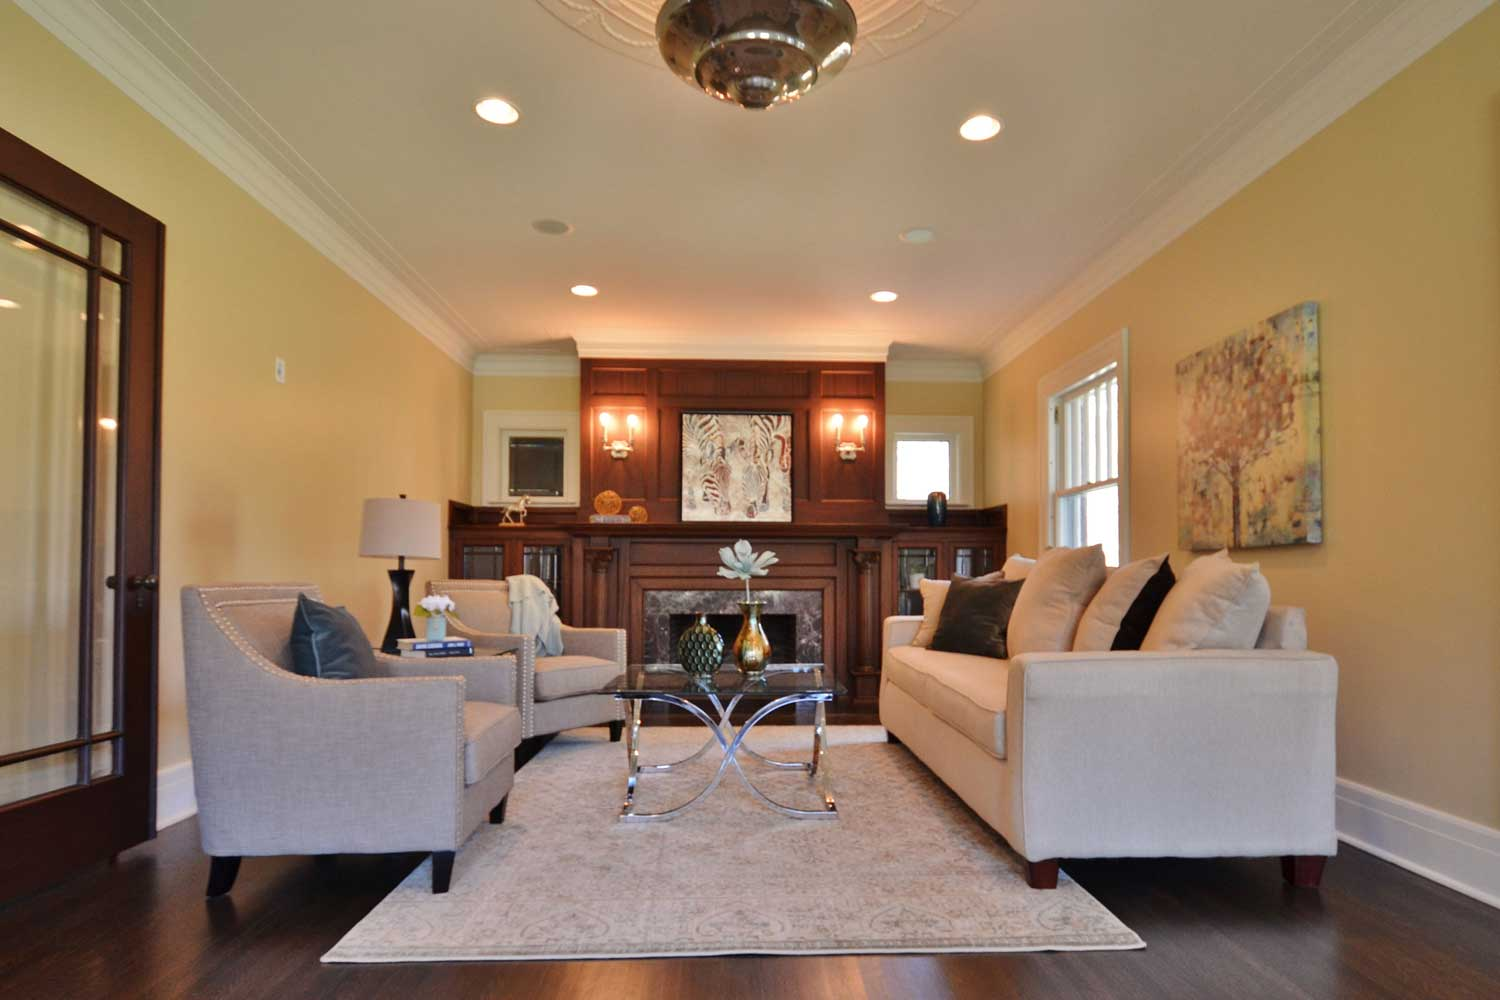 <b>Bloomfield Township, Michigan</b><br/><i>3 Bedrooms, 4,223 sq. ft.</i><br/>1914 Craftsman-style estate